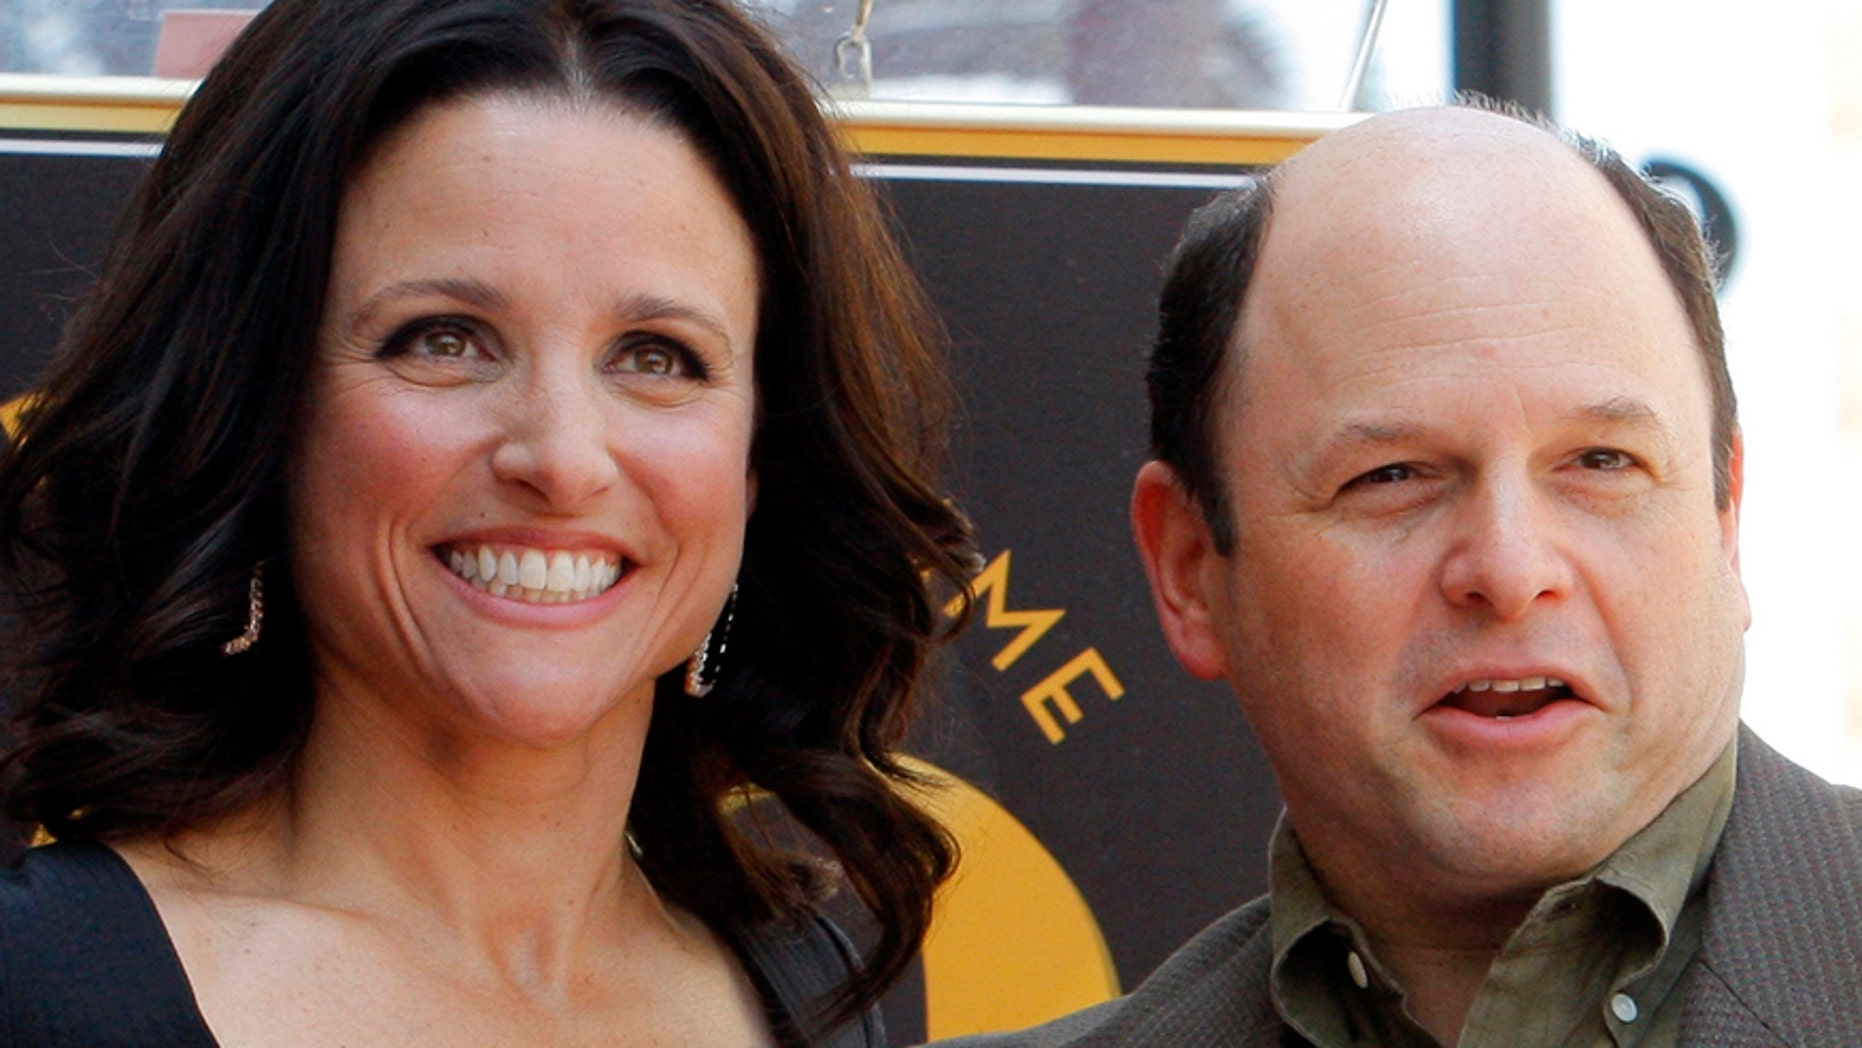 """Actress Julia Louis-Dreyfus (L) poses with """"Seinfeld"""" co-star Jason Alexander at a ceremony to unveil her star on the Hollywood Walk of Fame in Hollywood, California May 4, 2010.   REUTERS/Fred Prouser   (UNITED STATES - Tags: ENTERTAINMENT) - RTR2DGQI"""